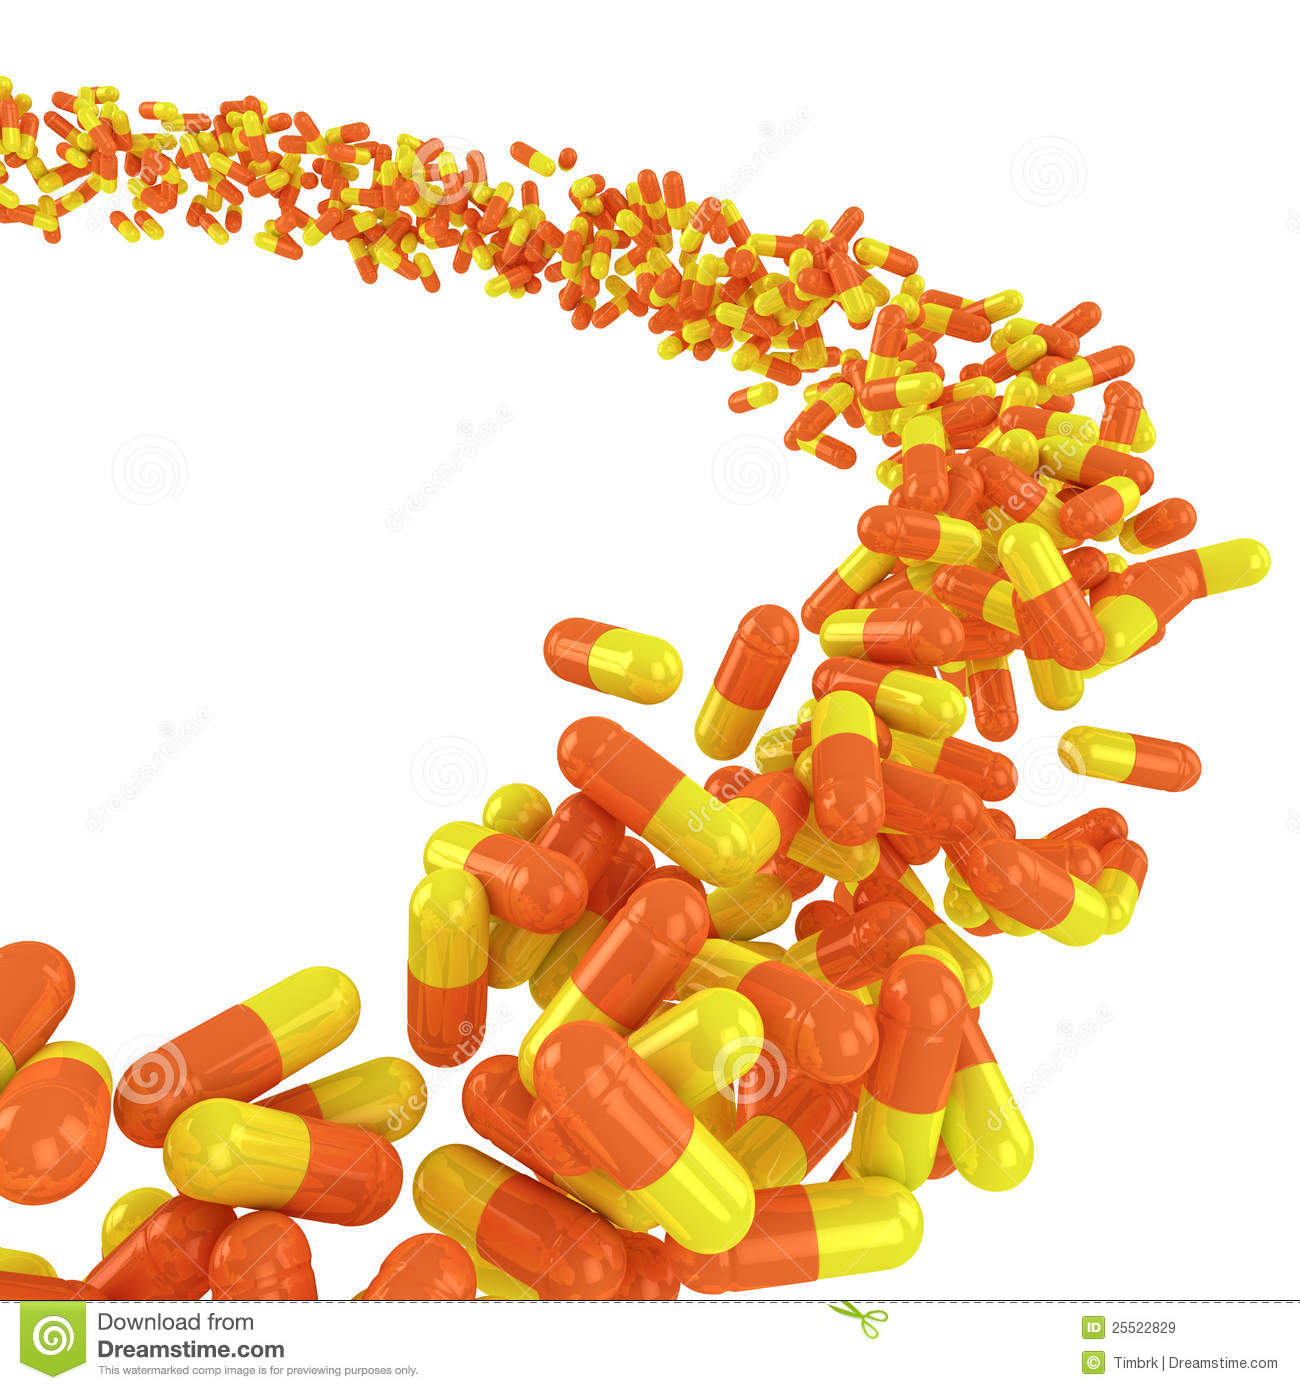 Flow Of Capsules Royalty Free Stock Images - Image: 25522829